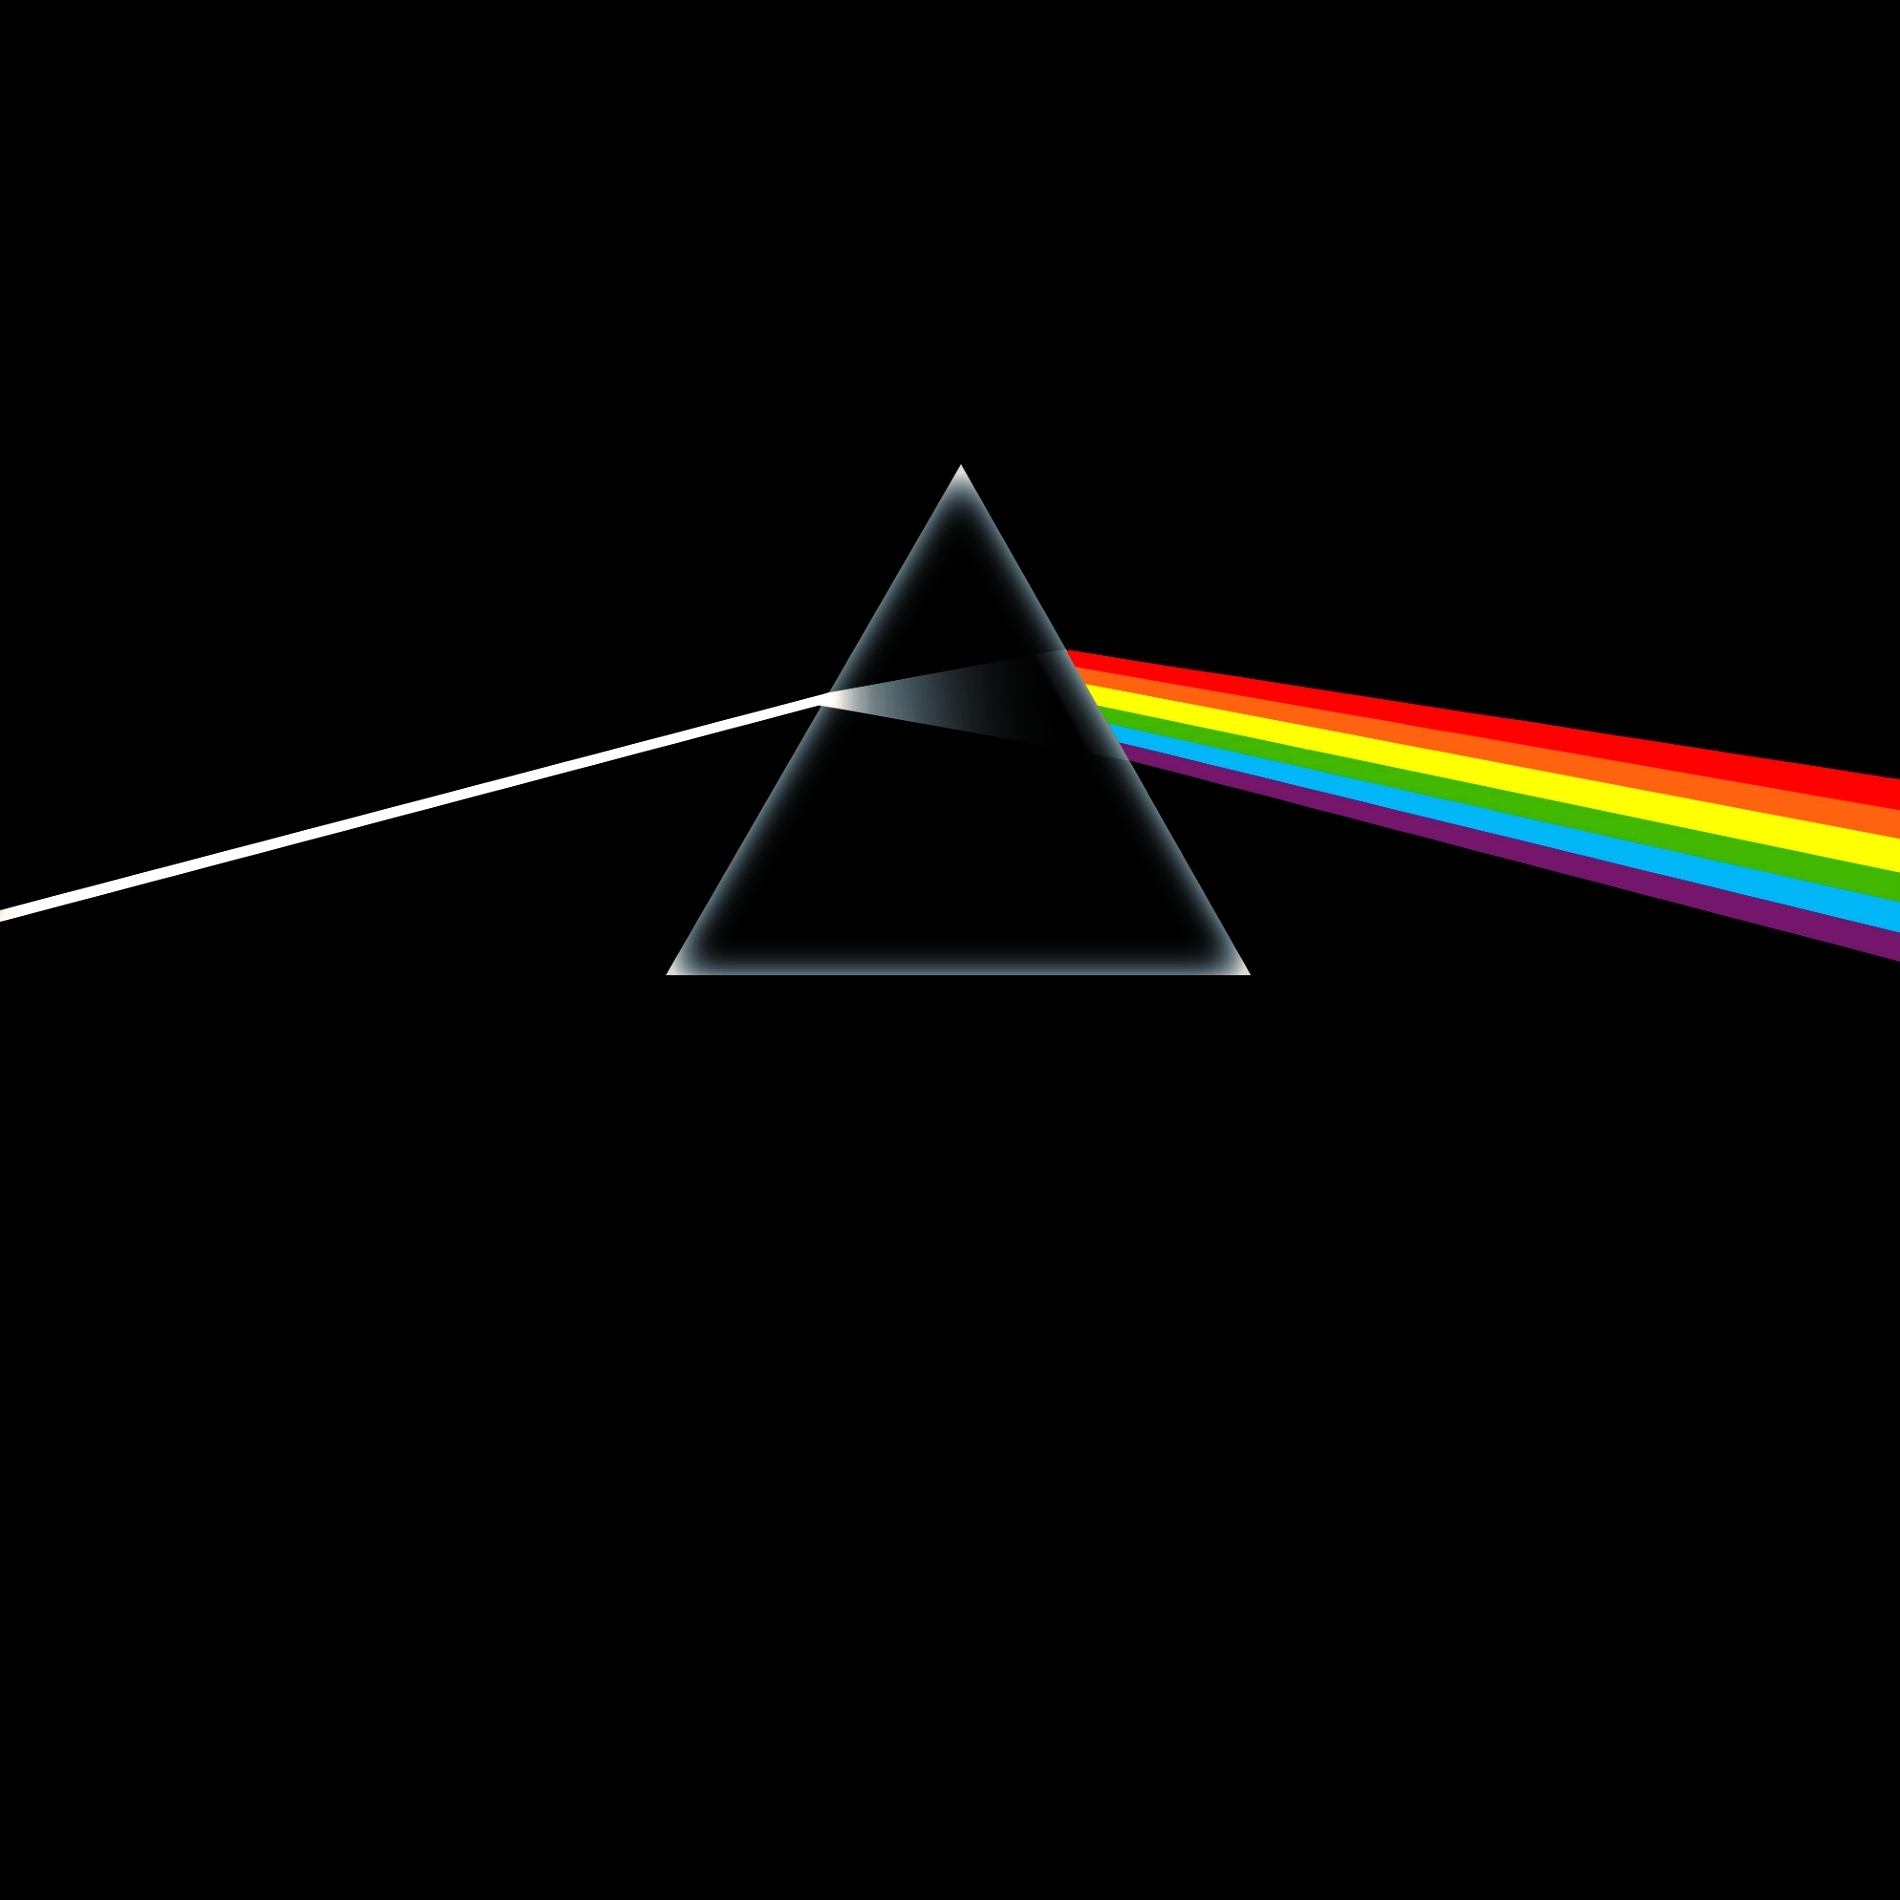 dark side of the moon - what can one say other than perfect from the